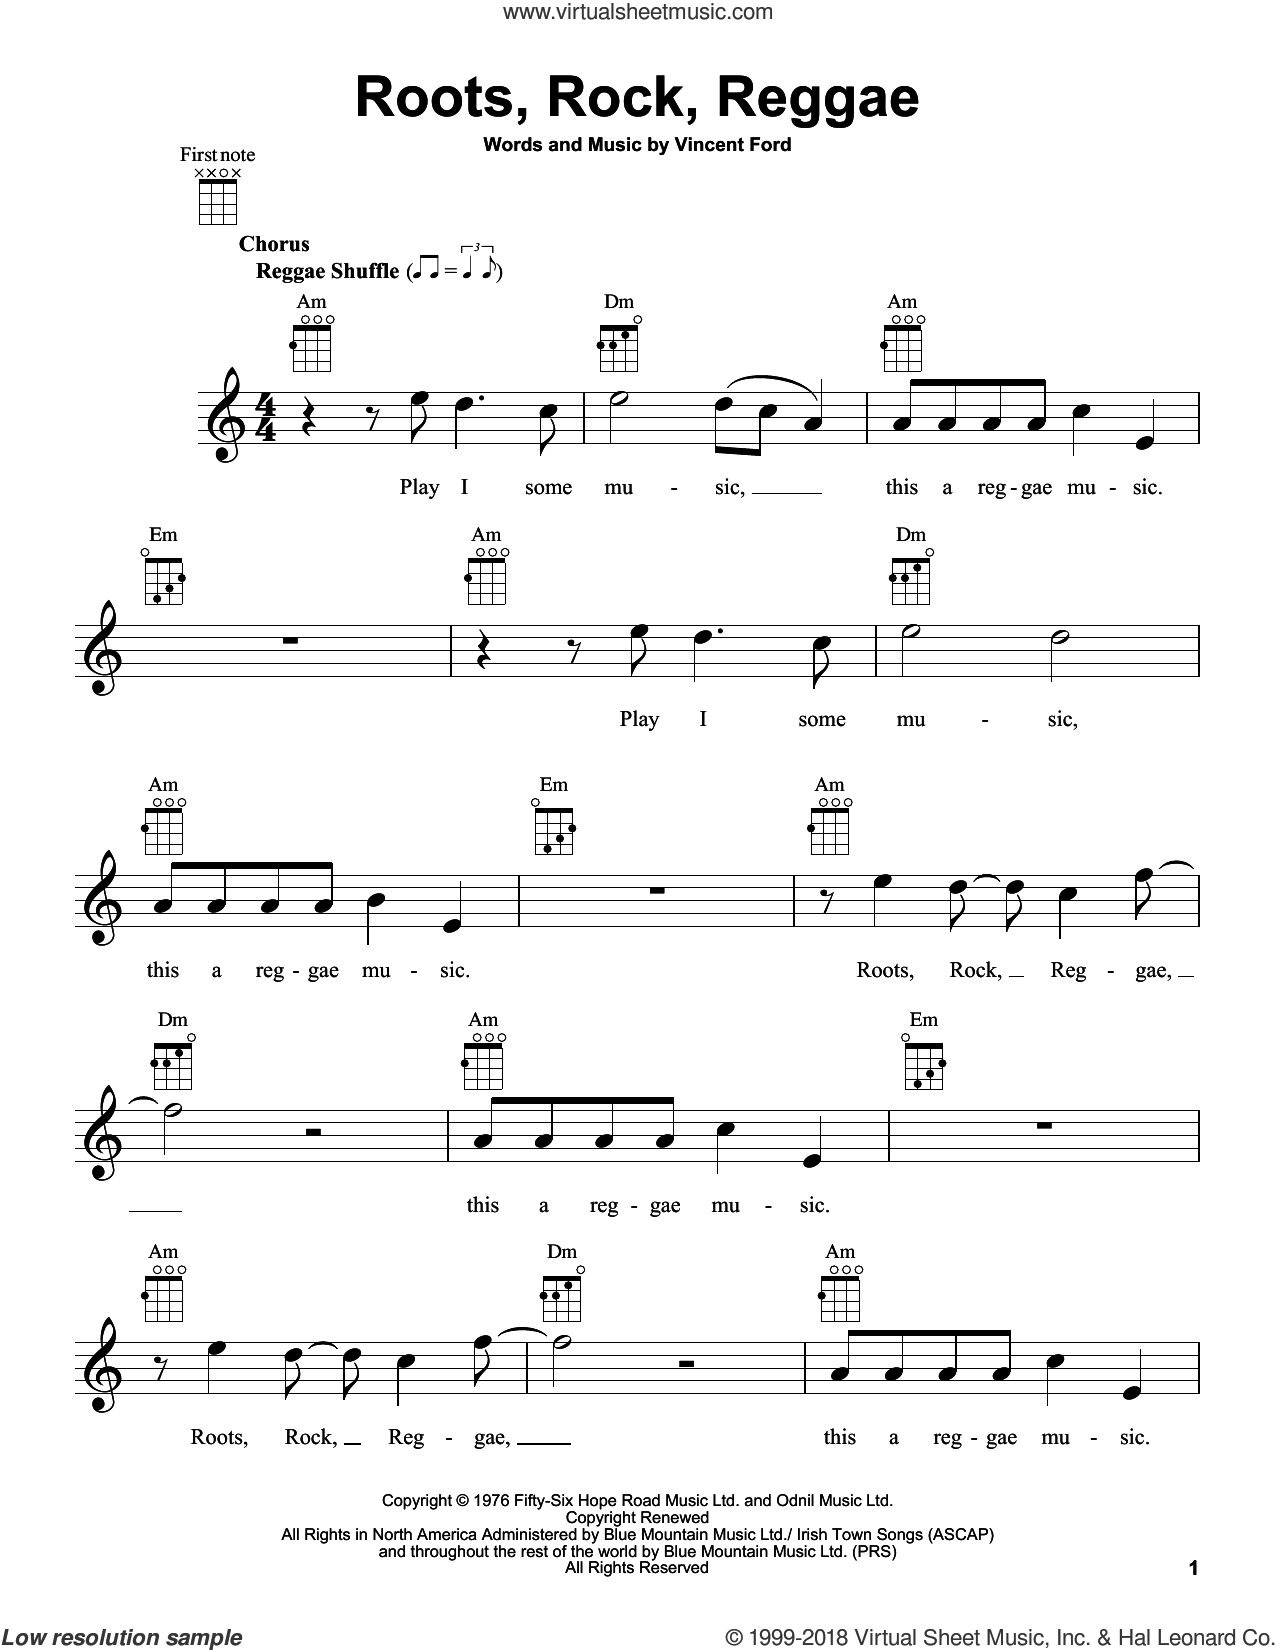 Roots, Rock, Reggae sheet music for ukulele by Bob Marley and Vincent Ford, intermediate skill level